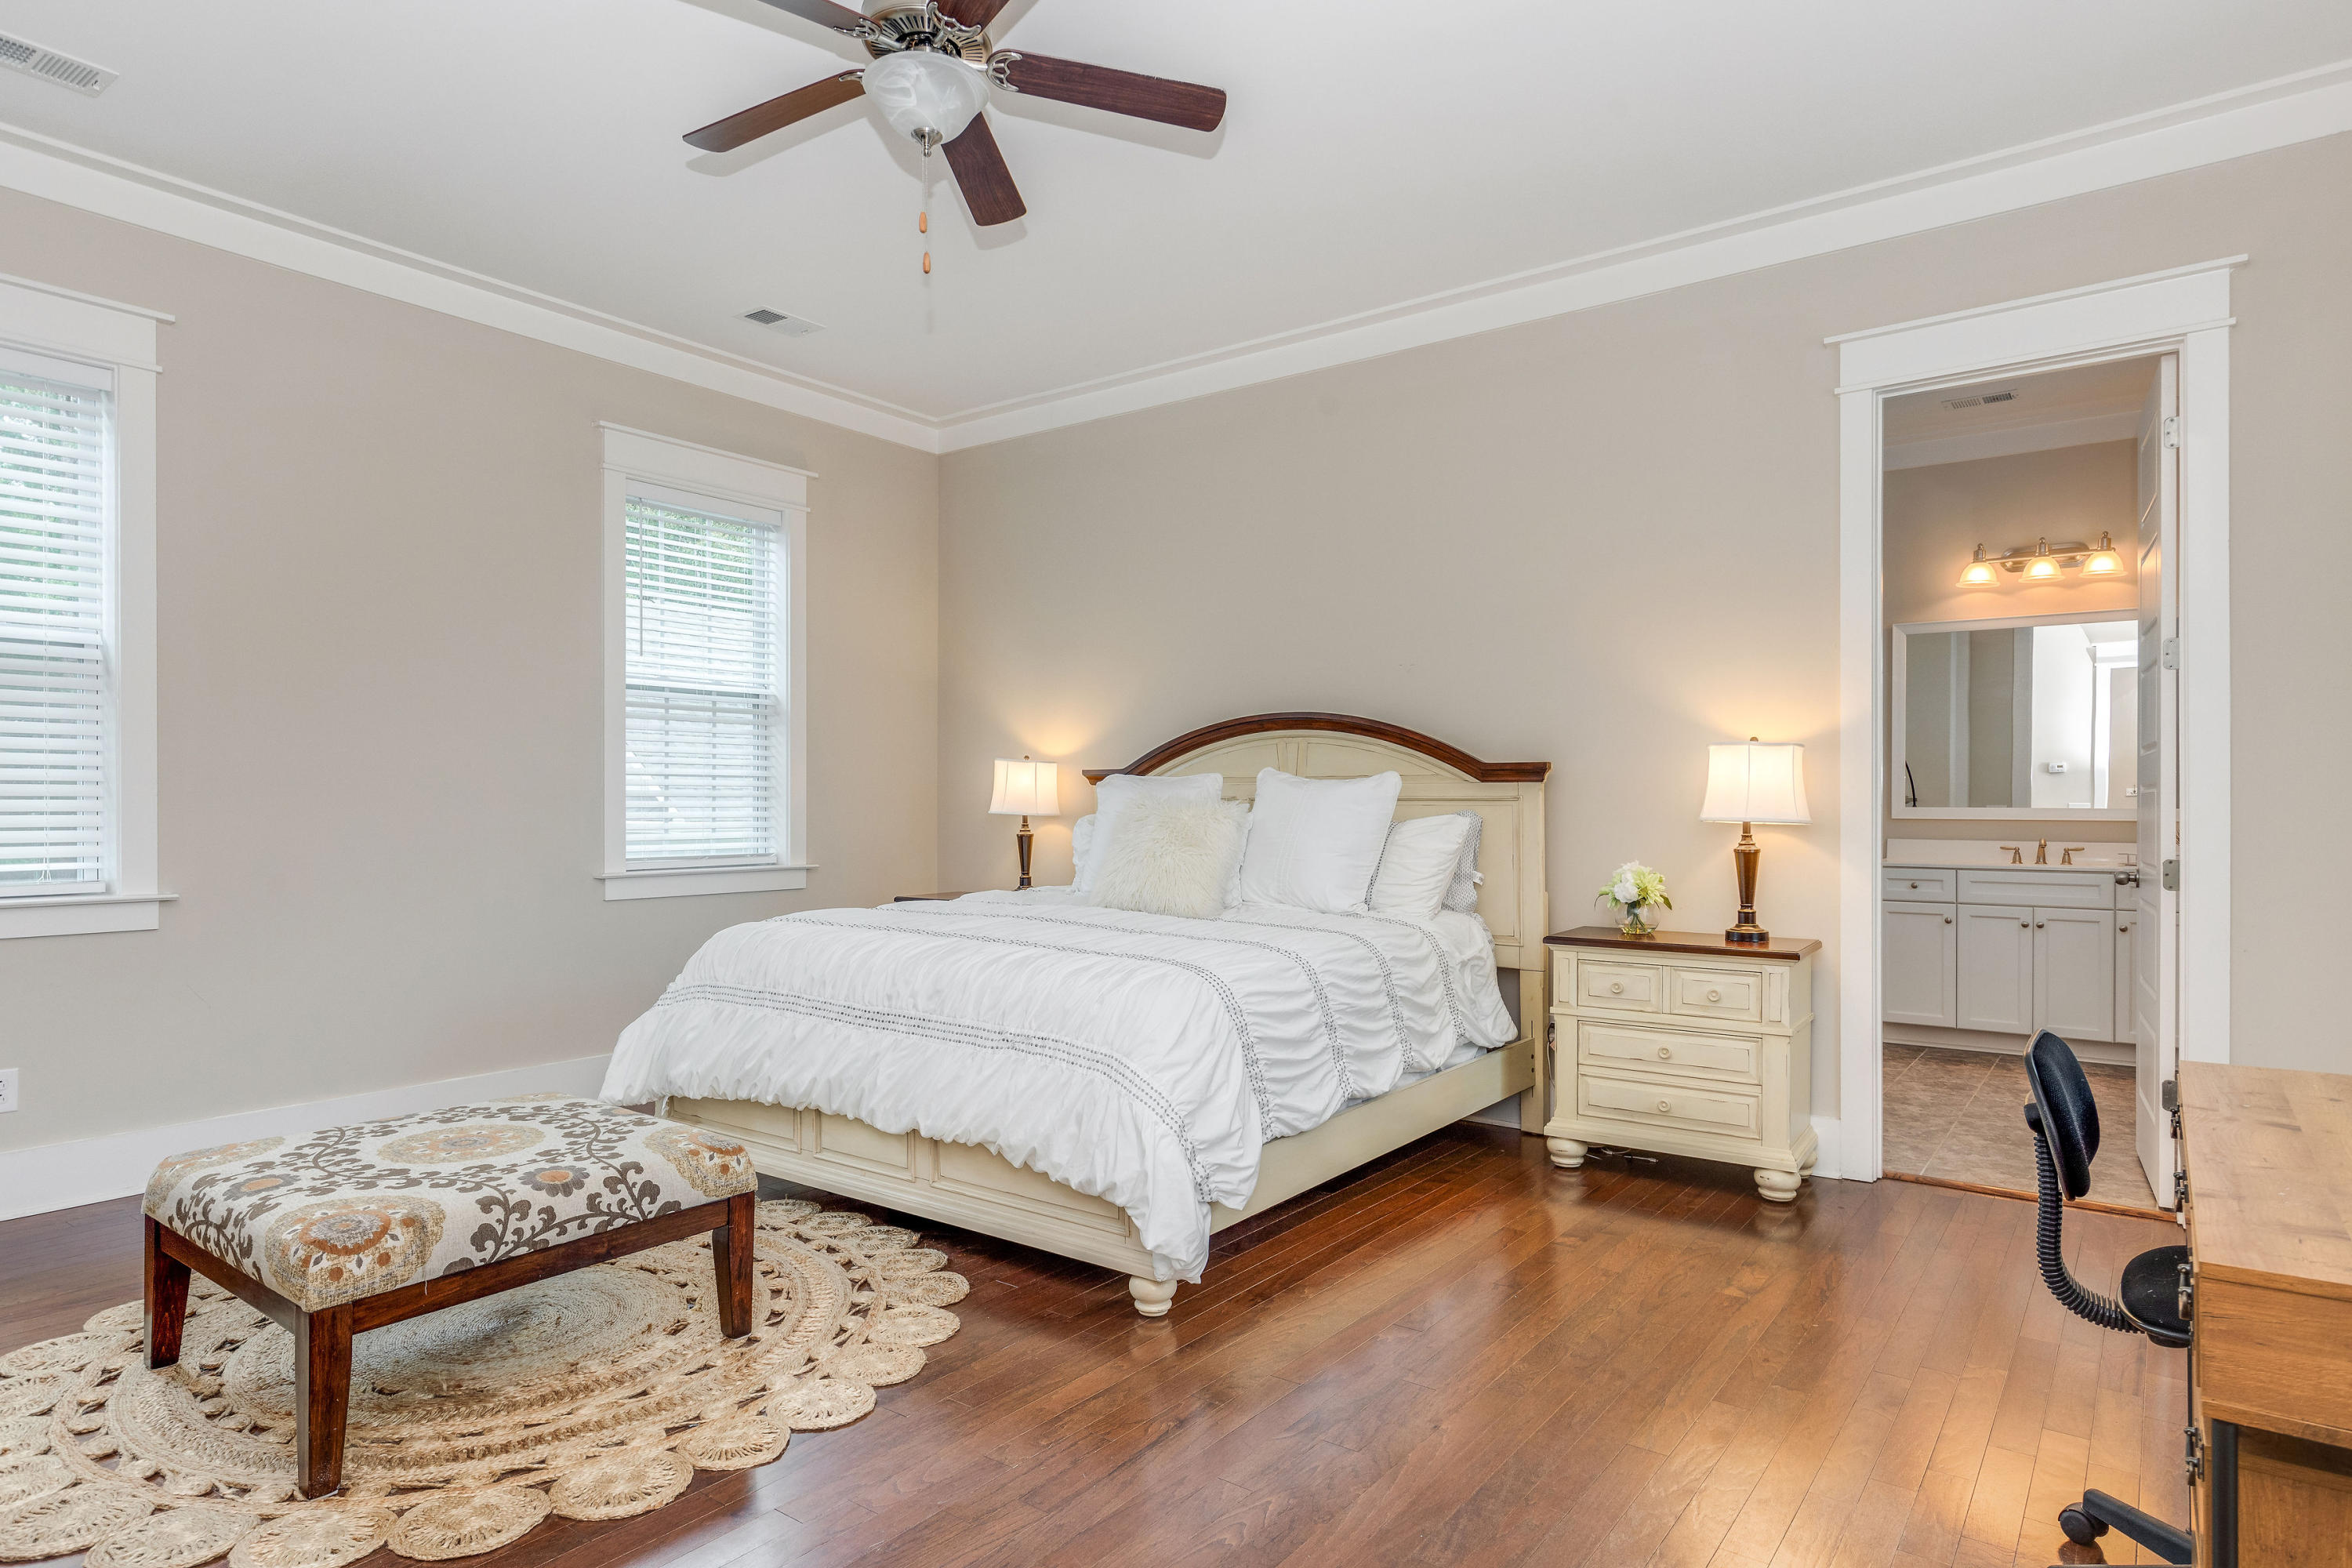 Rivertowne On The Wando Homes For Sale - 2765 Rivertowne, Mount Pleasant, SC - 19